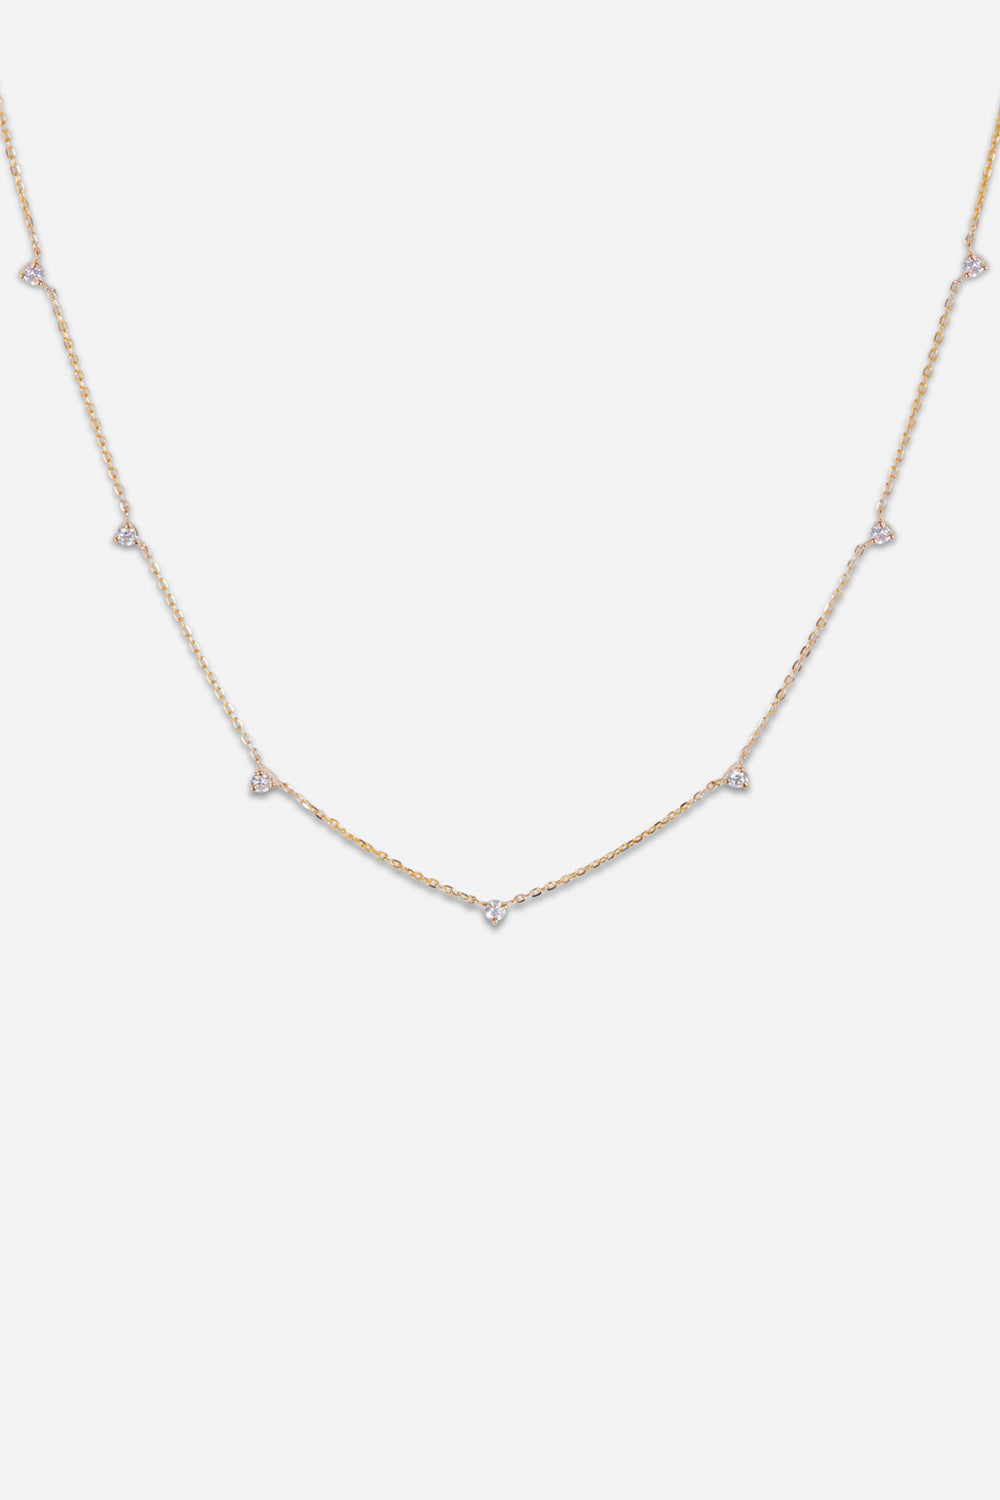 7 Round Diamond Necklace | Yellow Gold